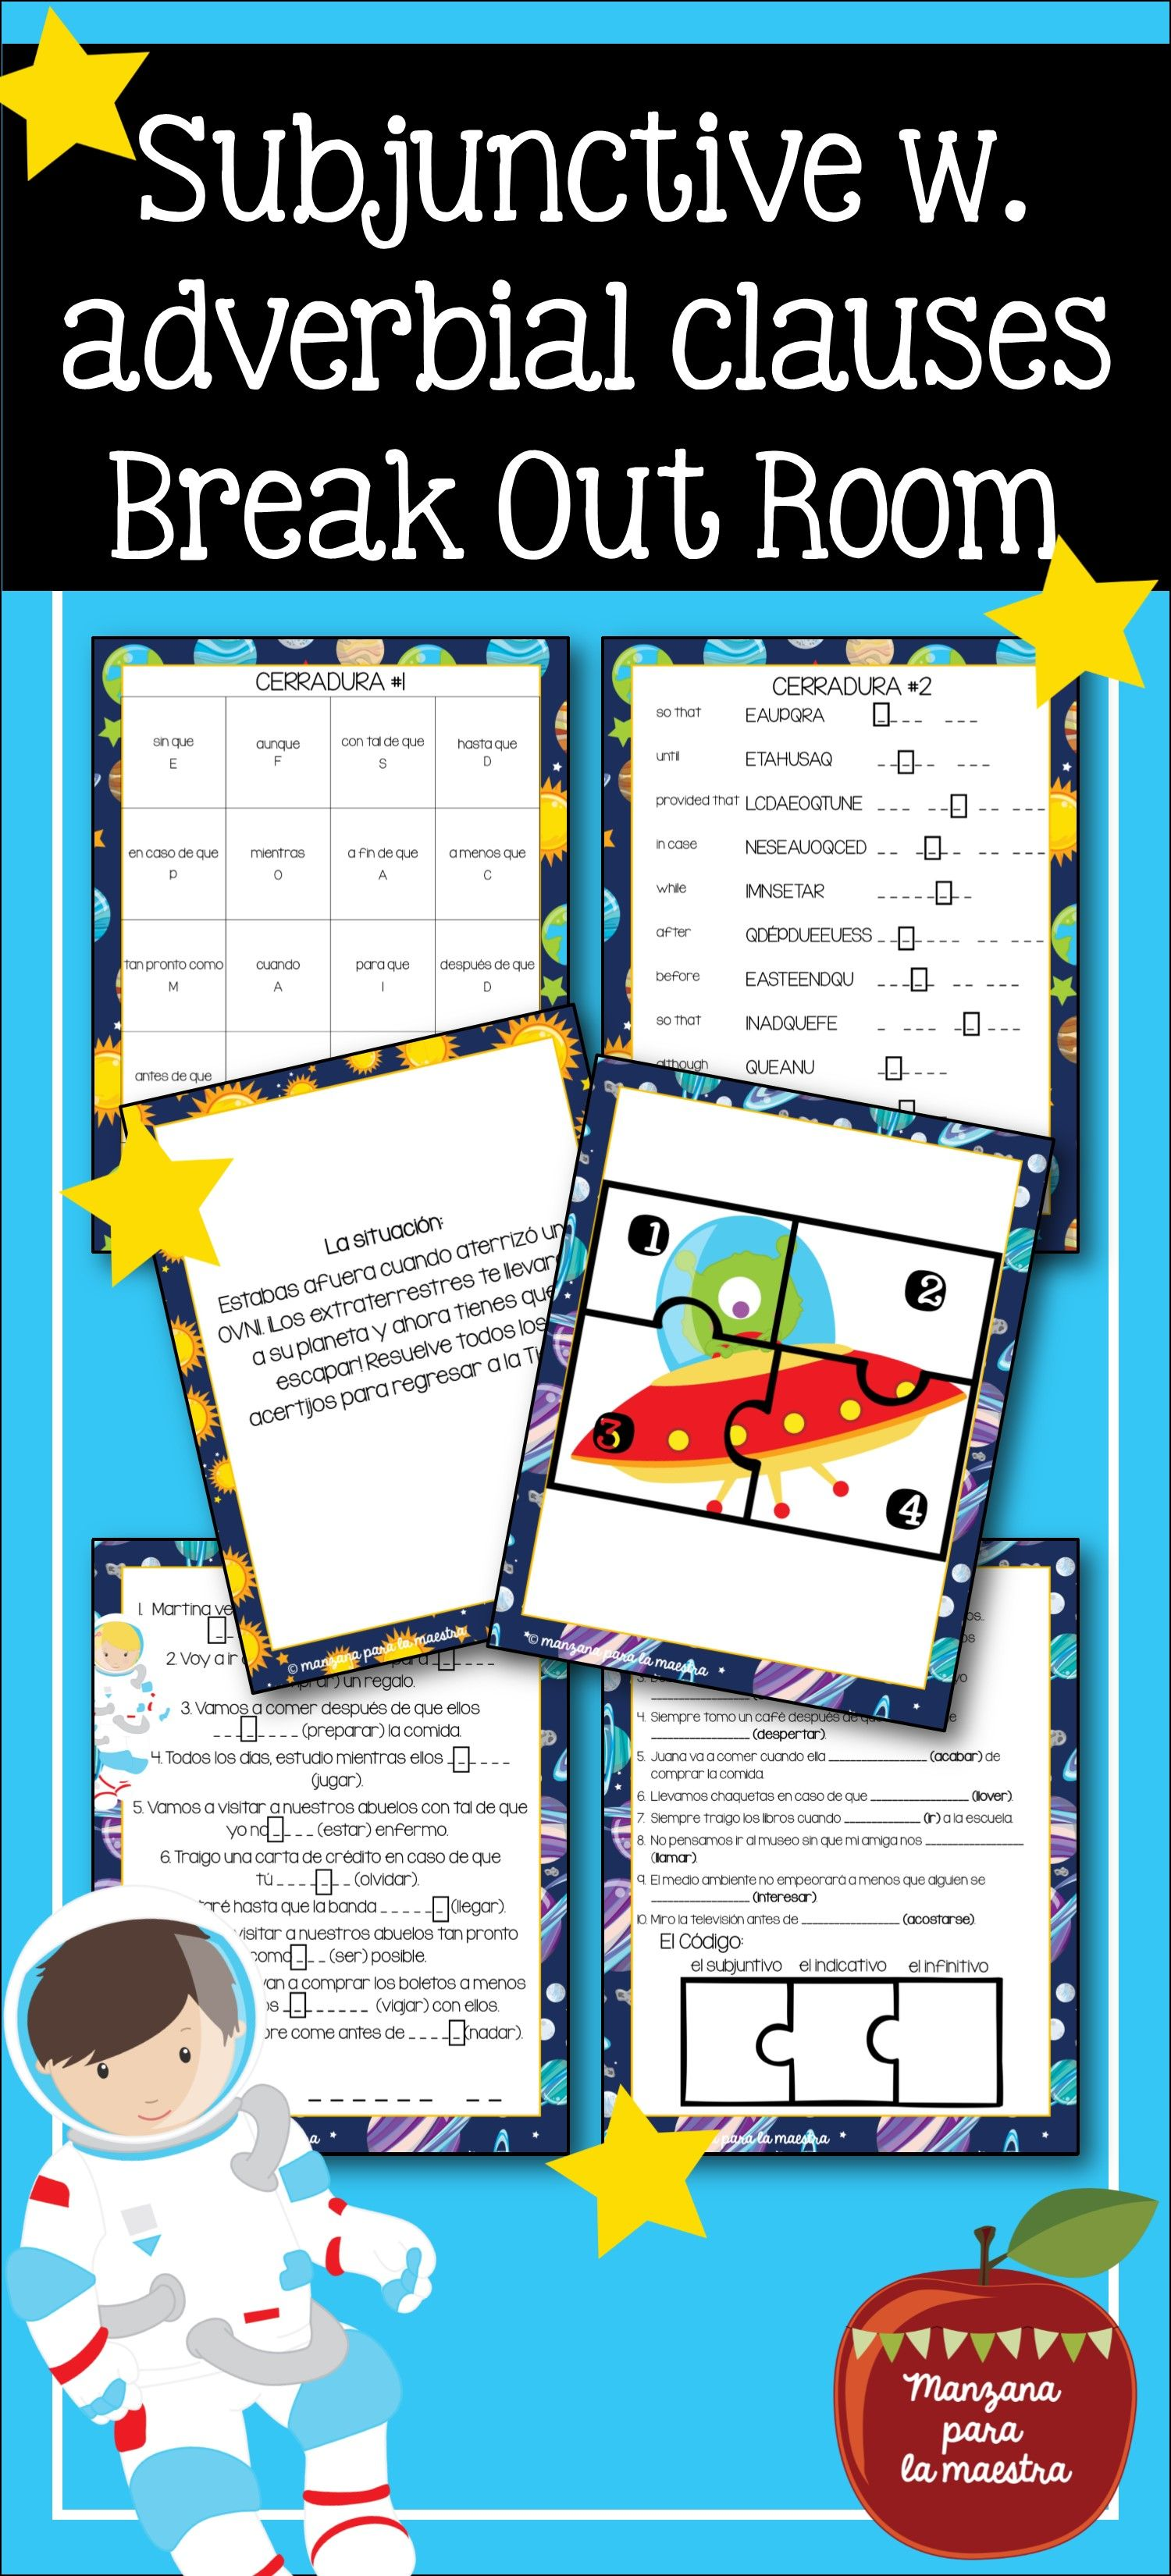 worksheet Acabar De Worksheet subjunctive with adverbial clauses break out escape room lesson activities